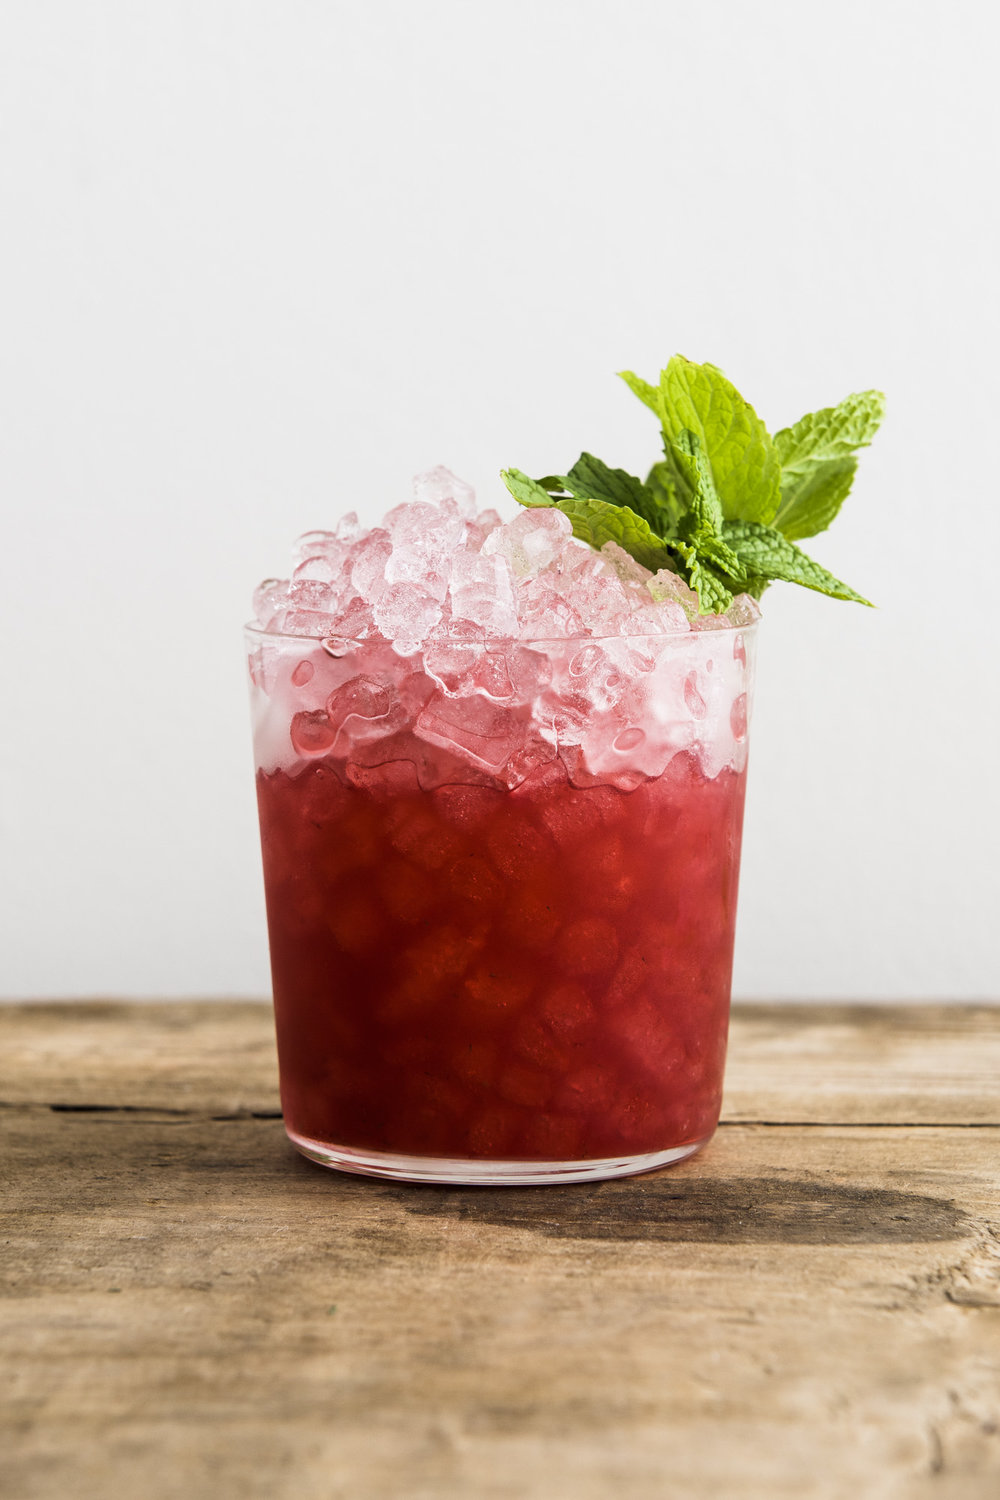 REDWOOD   1 1/2 oz Bourbon  1/2 oz Chareau  3/4 oz Fresh Lemon Juice  1/4 oz Honey Syrup  4-5 Blackberries  Muddle blackberries in shaking tin. Add bourbon, Chareau, fresh lemon juice, and honey. Shake all ingredients with ice. Strain and pour over crushed ice.